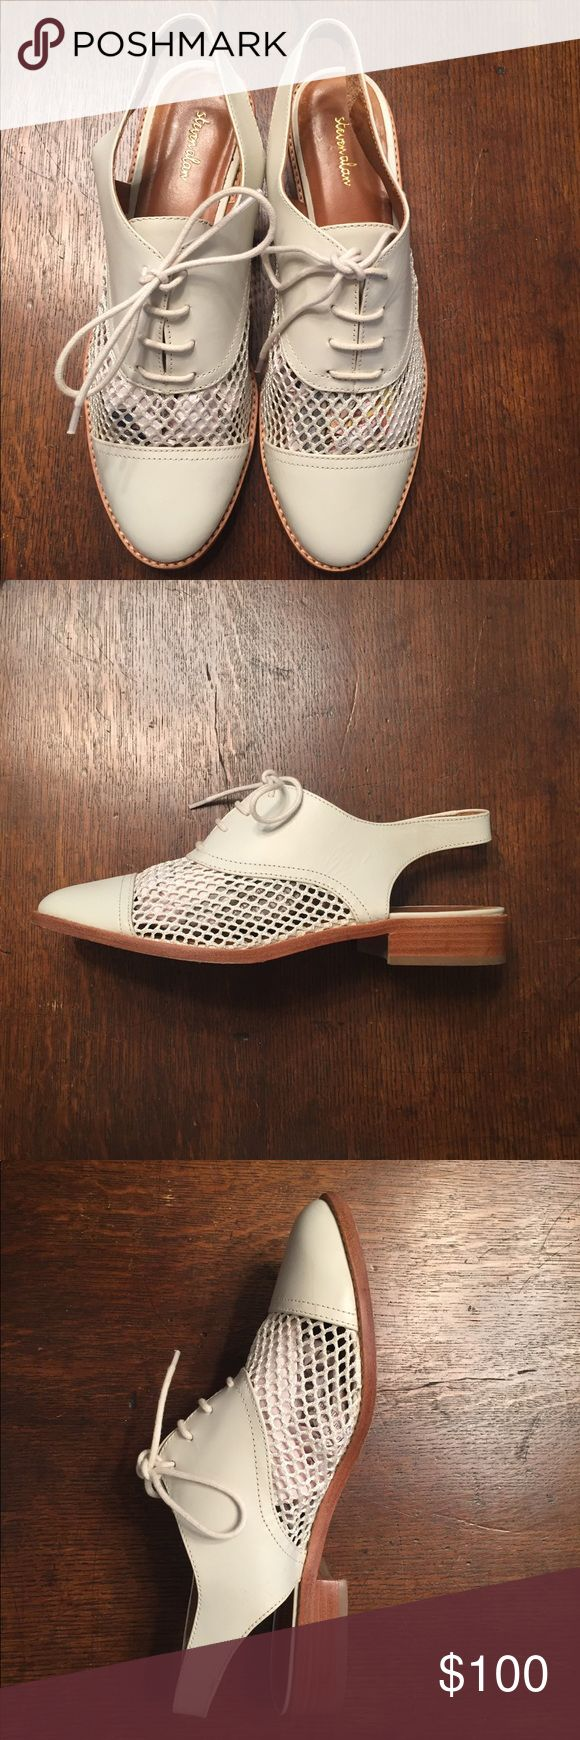 Steven Alan off white sling back oxfords sz 8B Steven Alan brand Leather and mesh egg shell sling back oxfords with laces on top.  Leather back strap and toe.  Made in Brazil. Perfect to pair with fall menswear inspired looks!  Only worn twice! Steven Alan Shoes Flats & Loafers